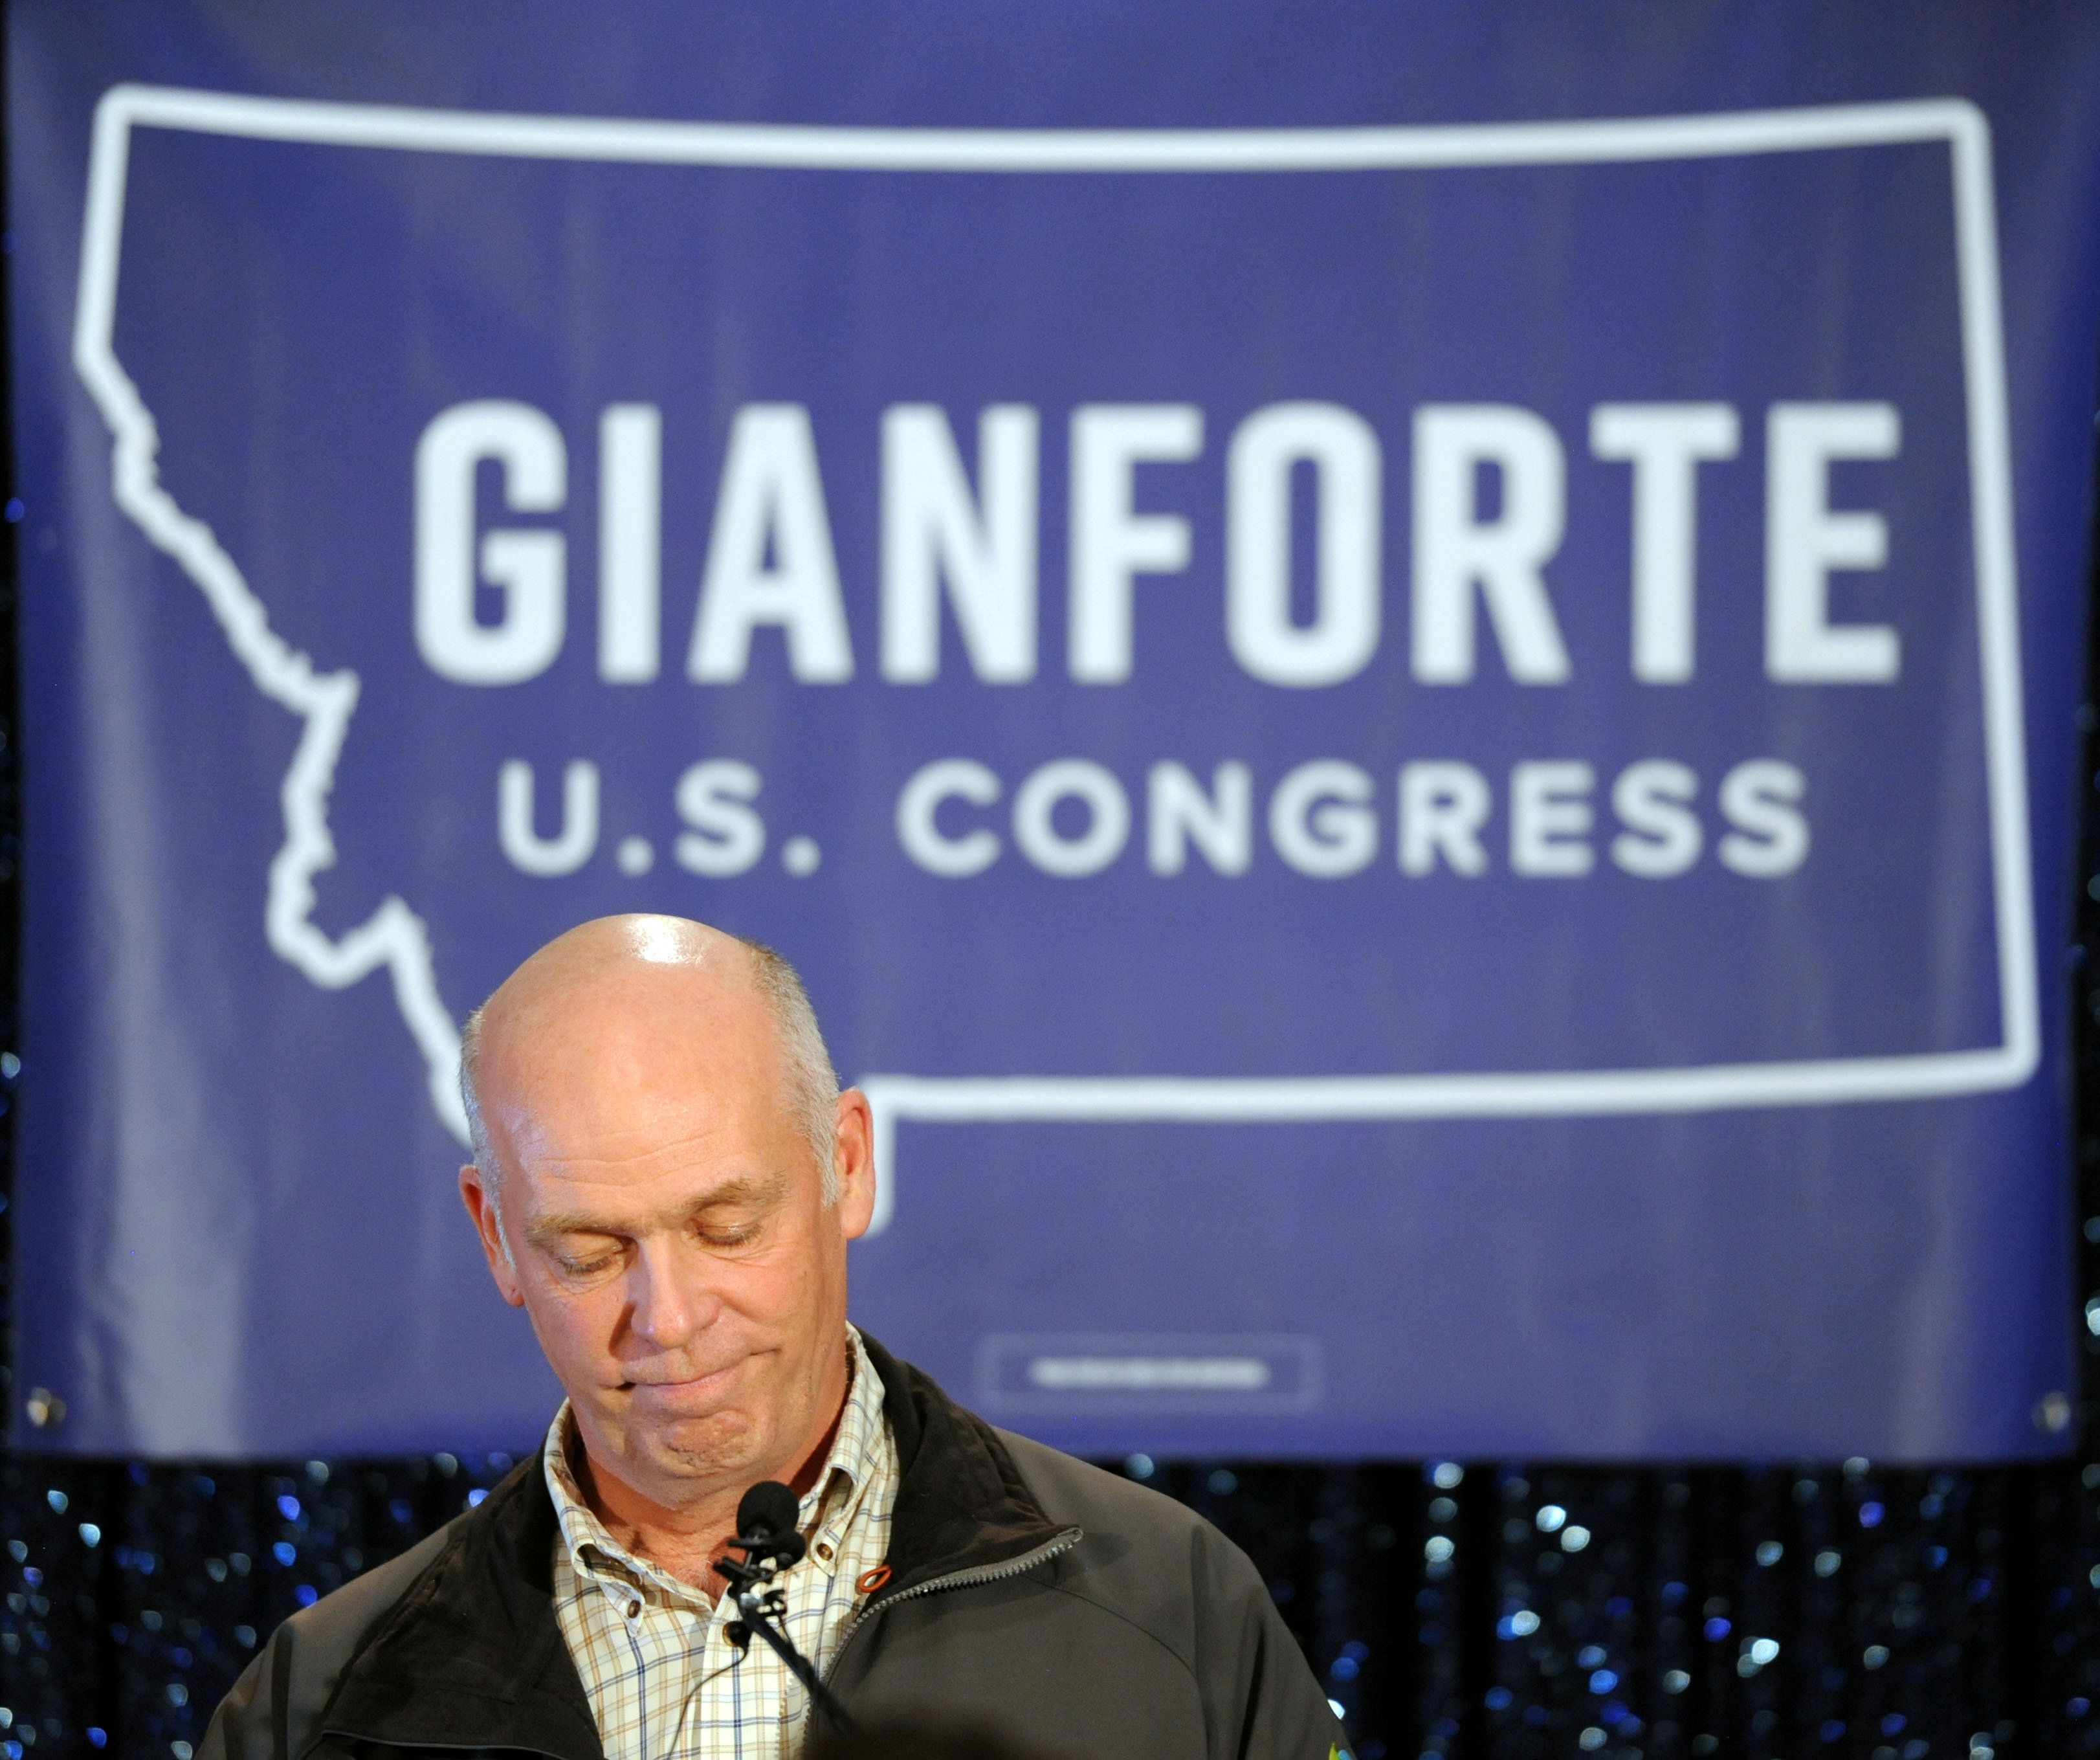 """<i>I had no right to respond the way I did to your legitimate question about healthcare policy. You were doing your job,"" Gianforte said in a letter to Ben Jacobs, the reporter he physically attacked in late May.</i>"